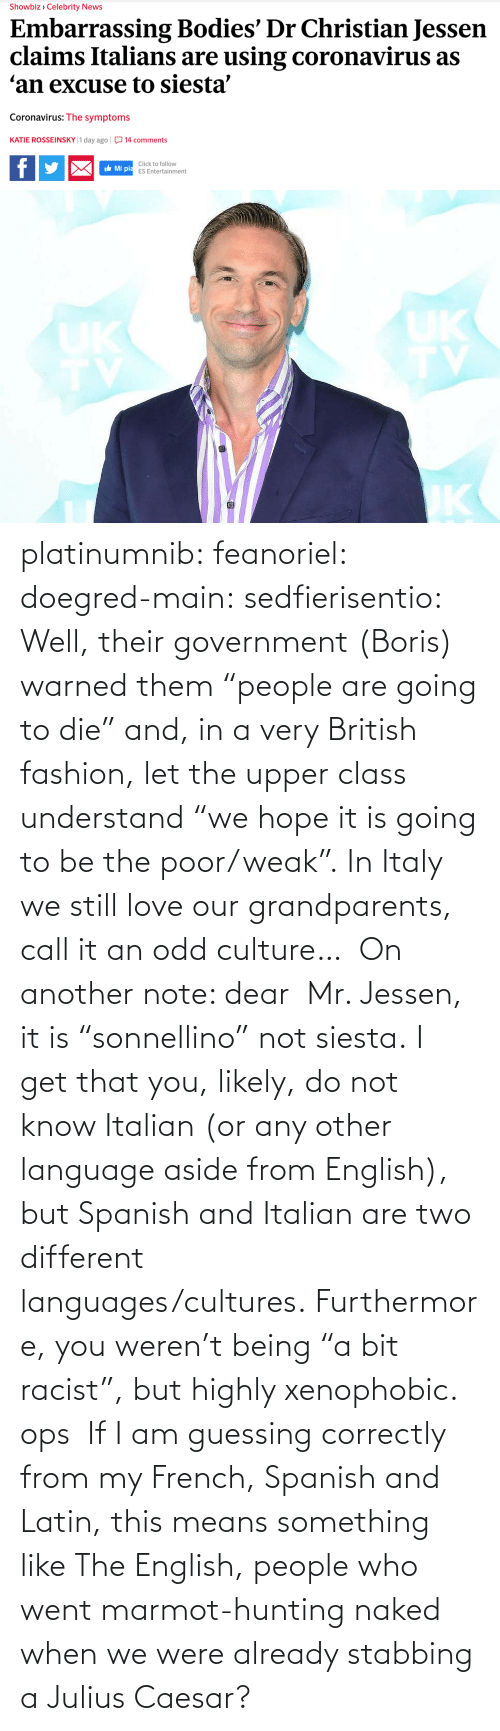 "italian: platinumnib:  feanoriel: doegred-main:  sedfierisentio:  Well, their government (Boris) warned them ""people are going to die"" and, in a very British fashion, let the upper class understand ""we hope it is going to be the poor/weak"". In Italy we still love our grandparents, call it an odd culture…  On another note: dear  Mr. Jessen, it is ""sonnellino"" not siesta. I get that you, likely, do not know Italian (or any other language aside from English), but Spanish and Italian are two different languages/cultures. Furthermore, you weren't being ""a bit racist"", but highly xenophobic.   ops   If I am guessing correctly from my French, Spanish and Latin, this means something like The English, people who went marmot-hunting naked when we were already stabbing a Julius Caesar?"